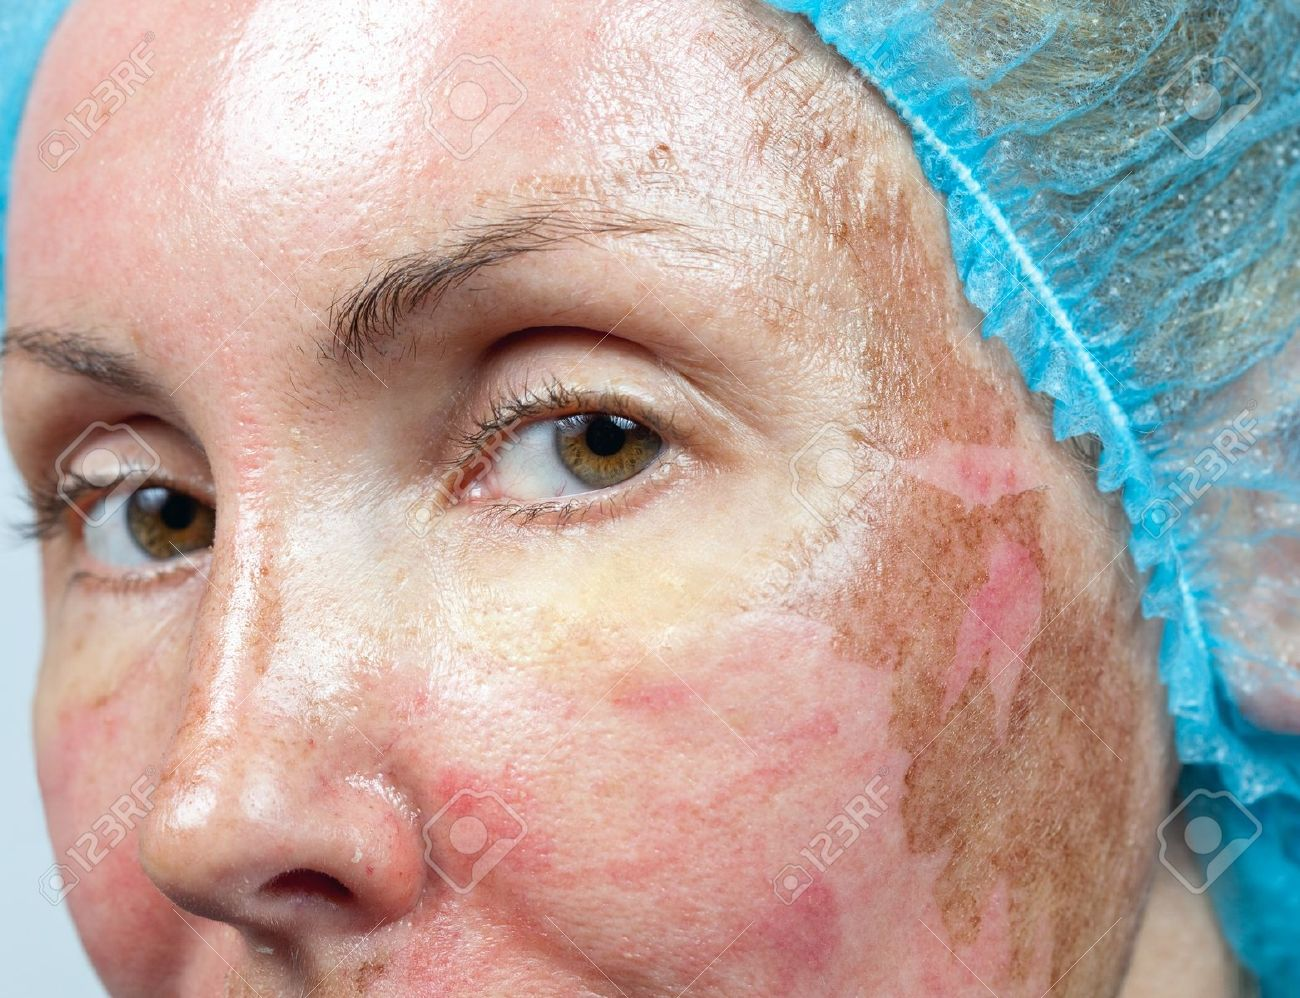 cosmetology new skin after a chemical peeling a redness because